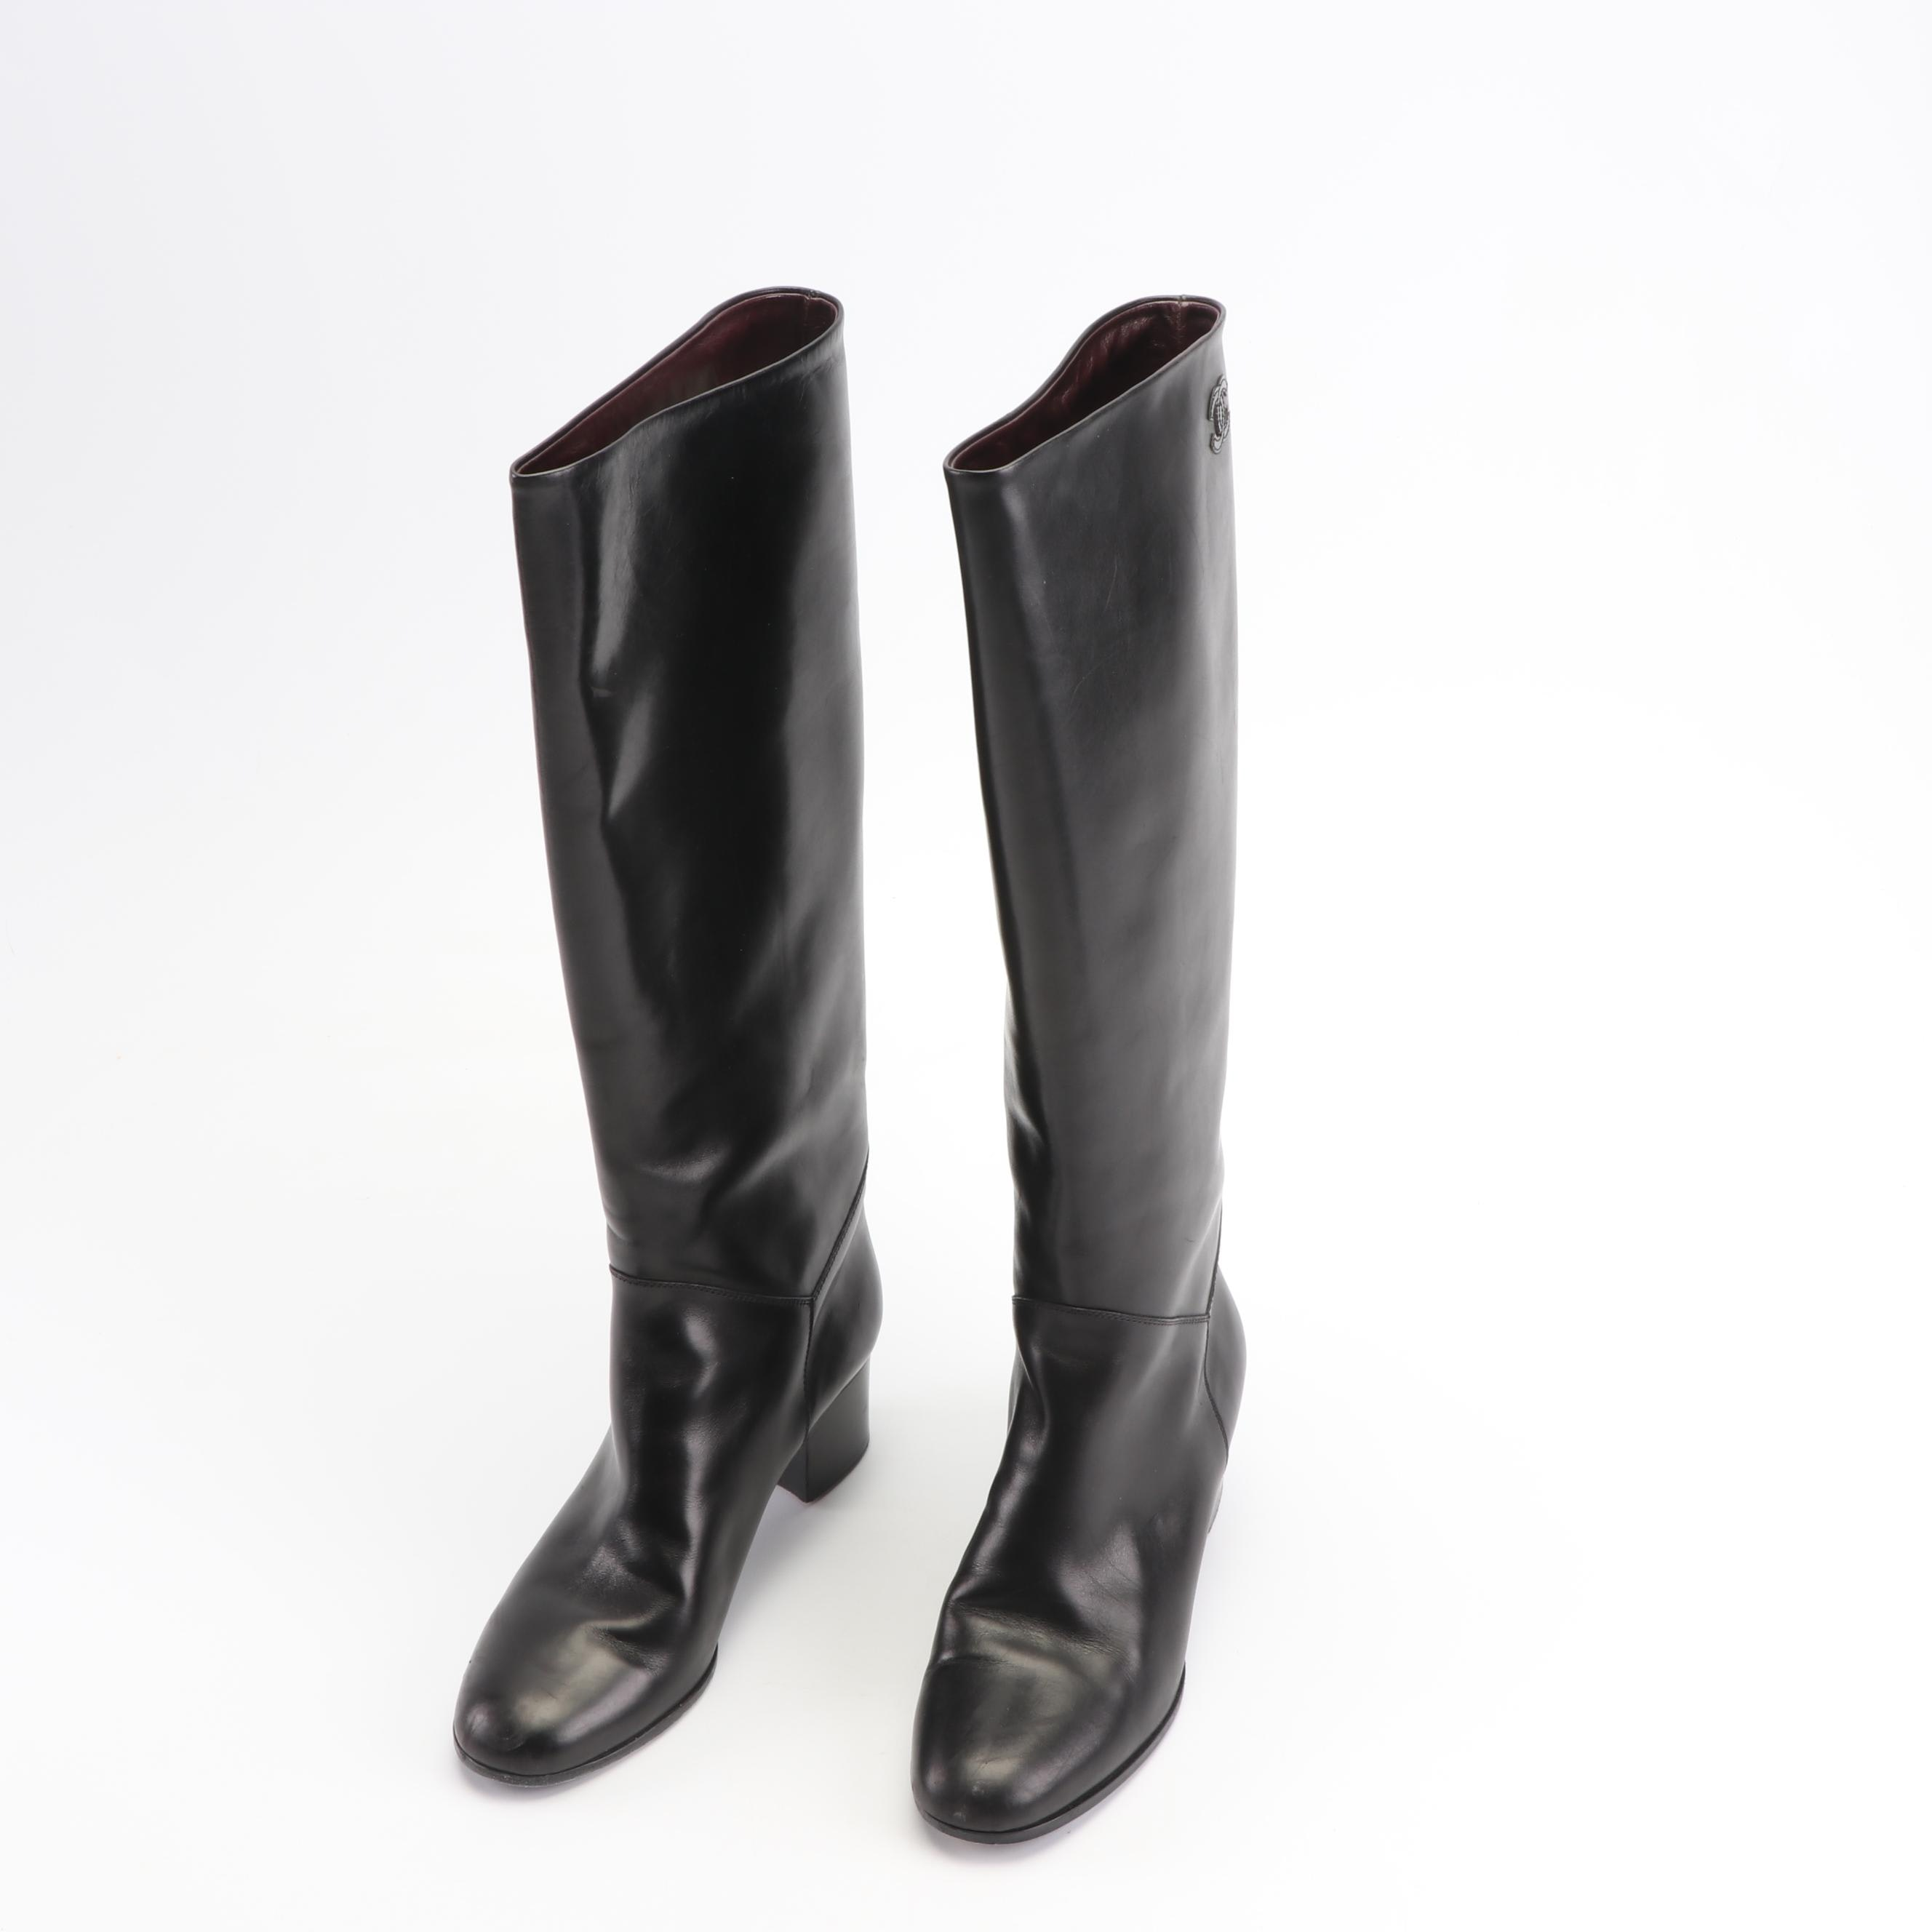 Women's Chanel Black Leather Tall Boots, Made in Italy